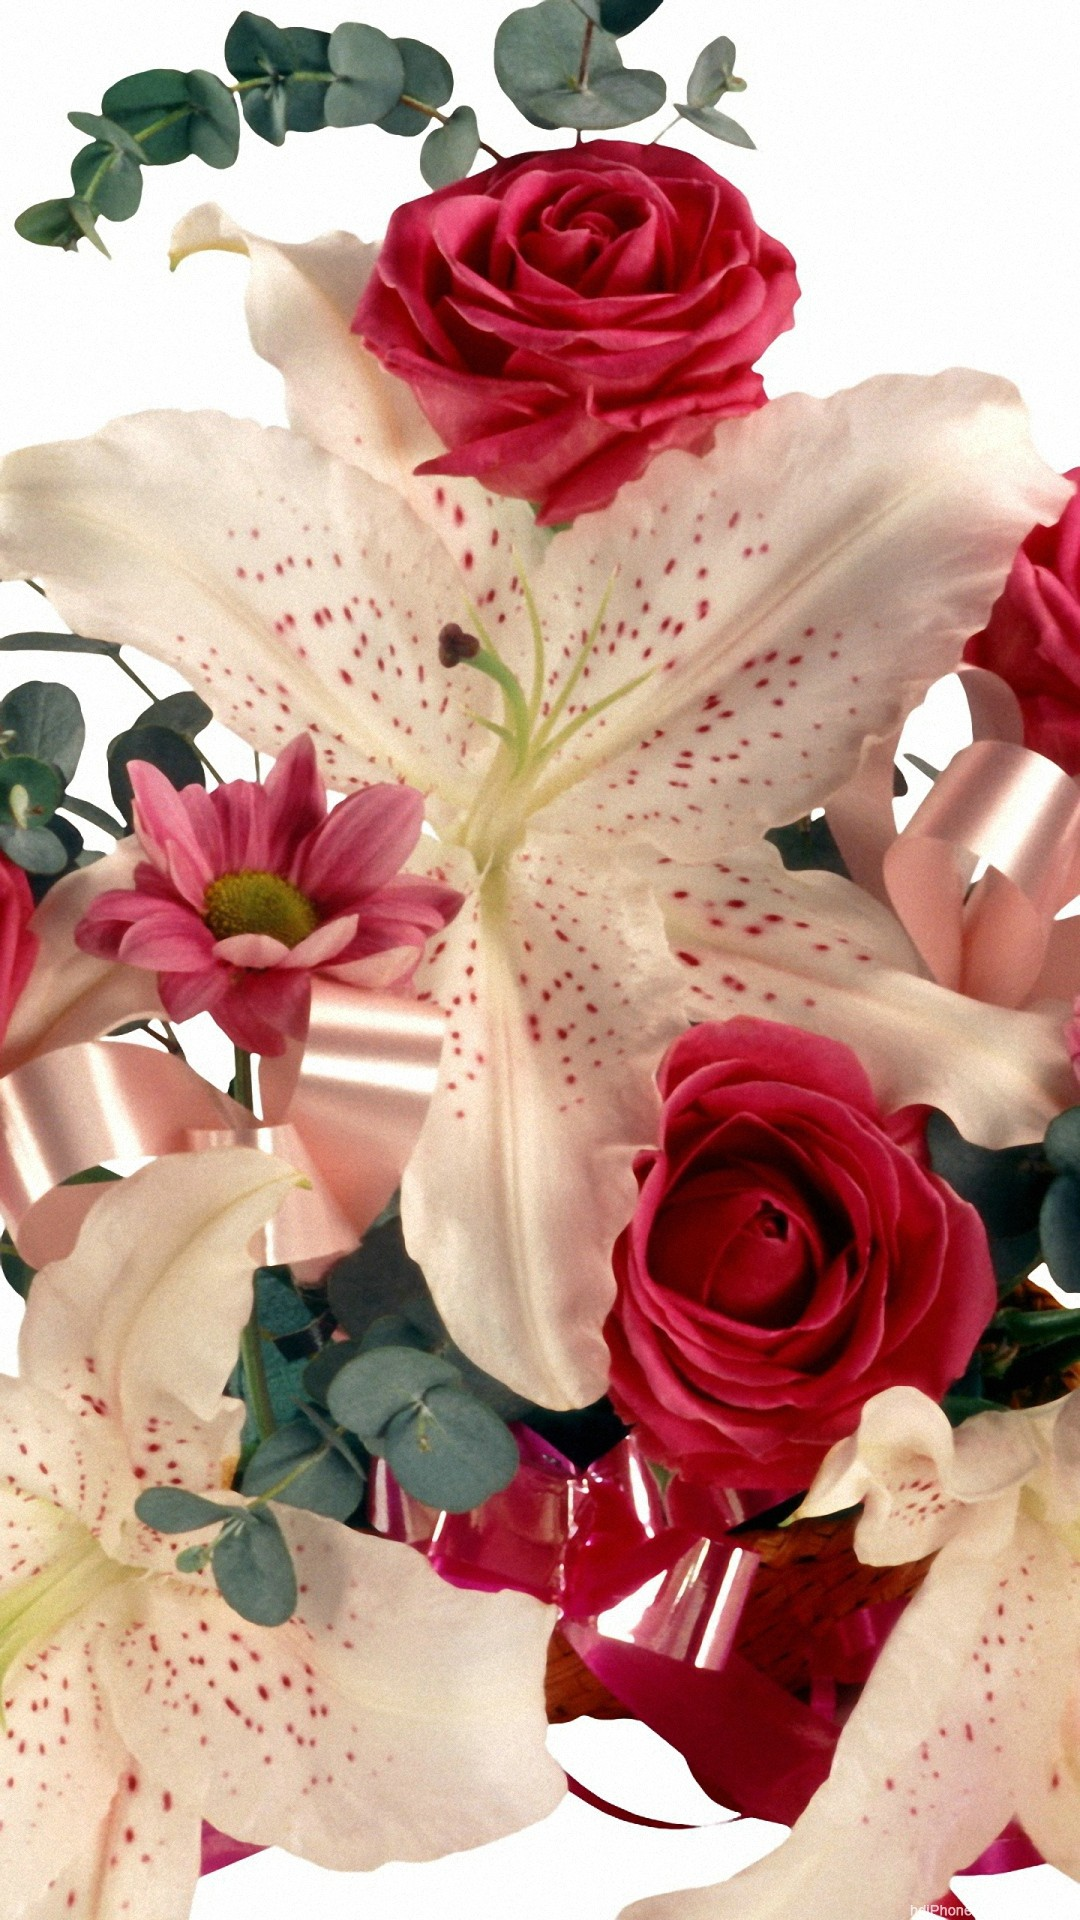 flower wallpaper for iPhone and Android | Lovely Flowers, Roses .